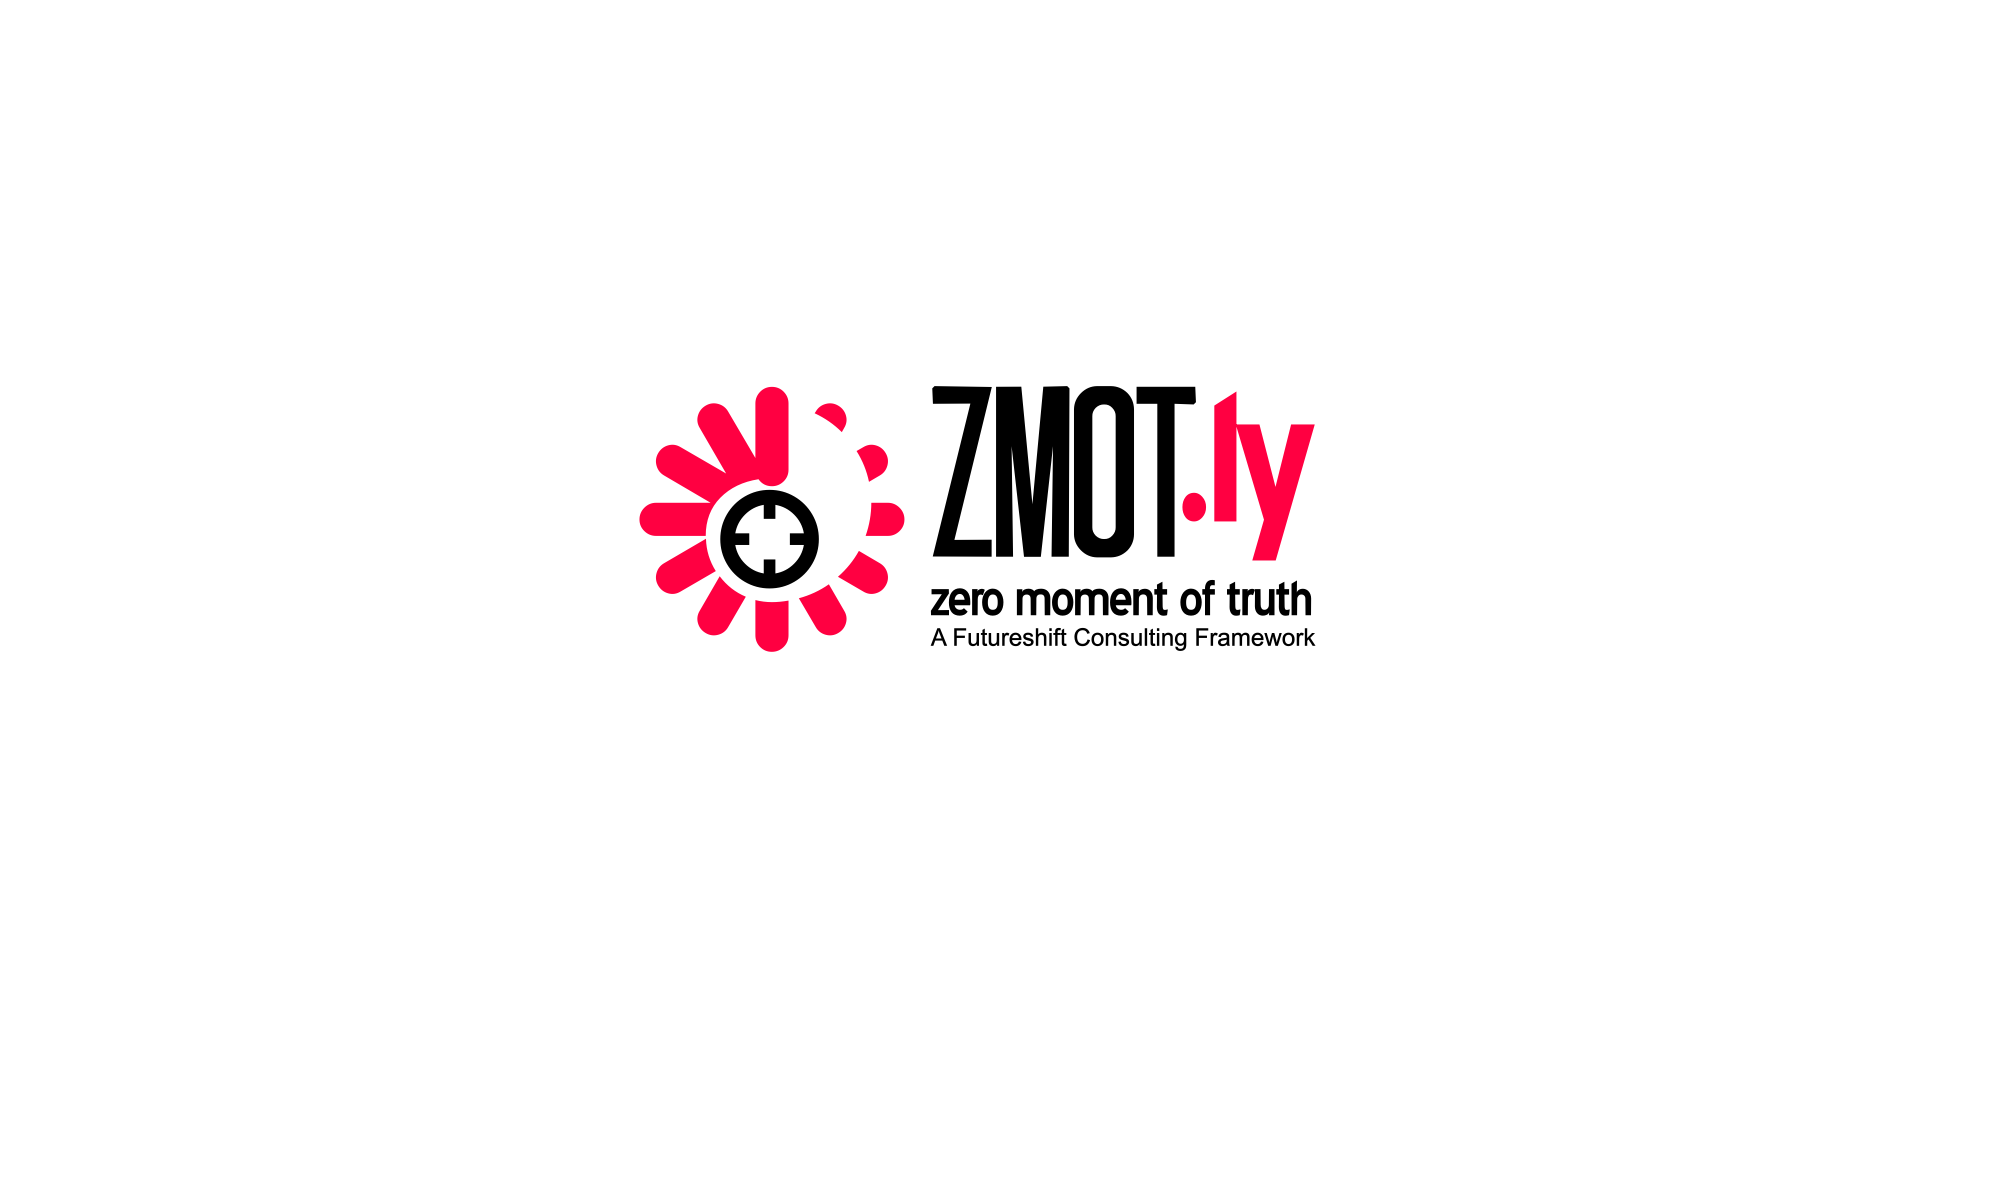 ZMOT.ly - Accelerate your business with rapid demand creation, and a predictable profitable revenue stream